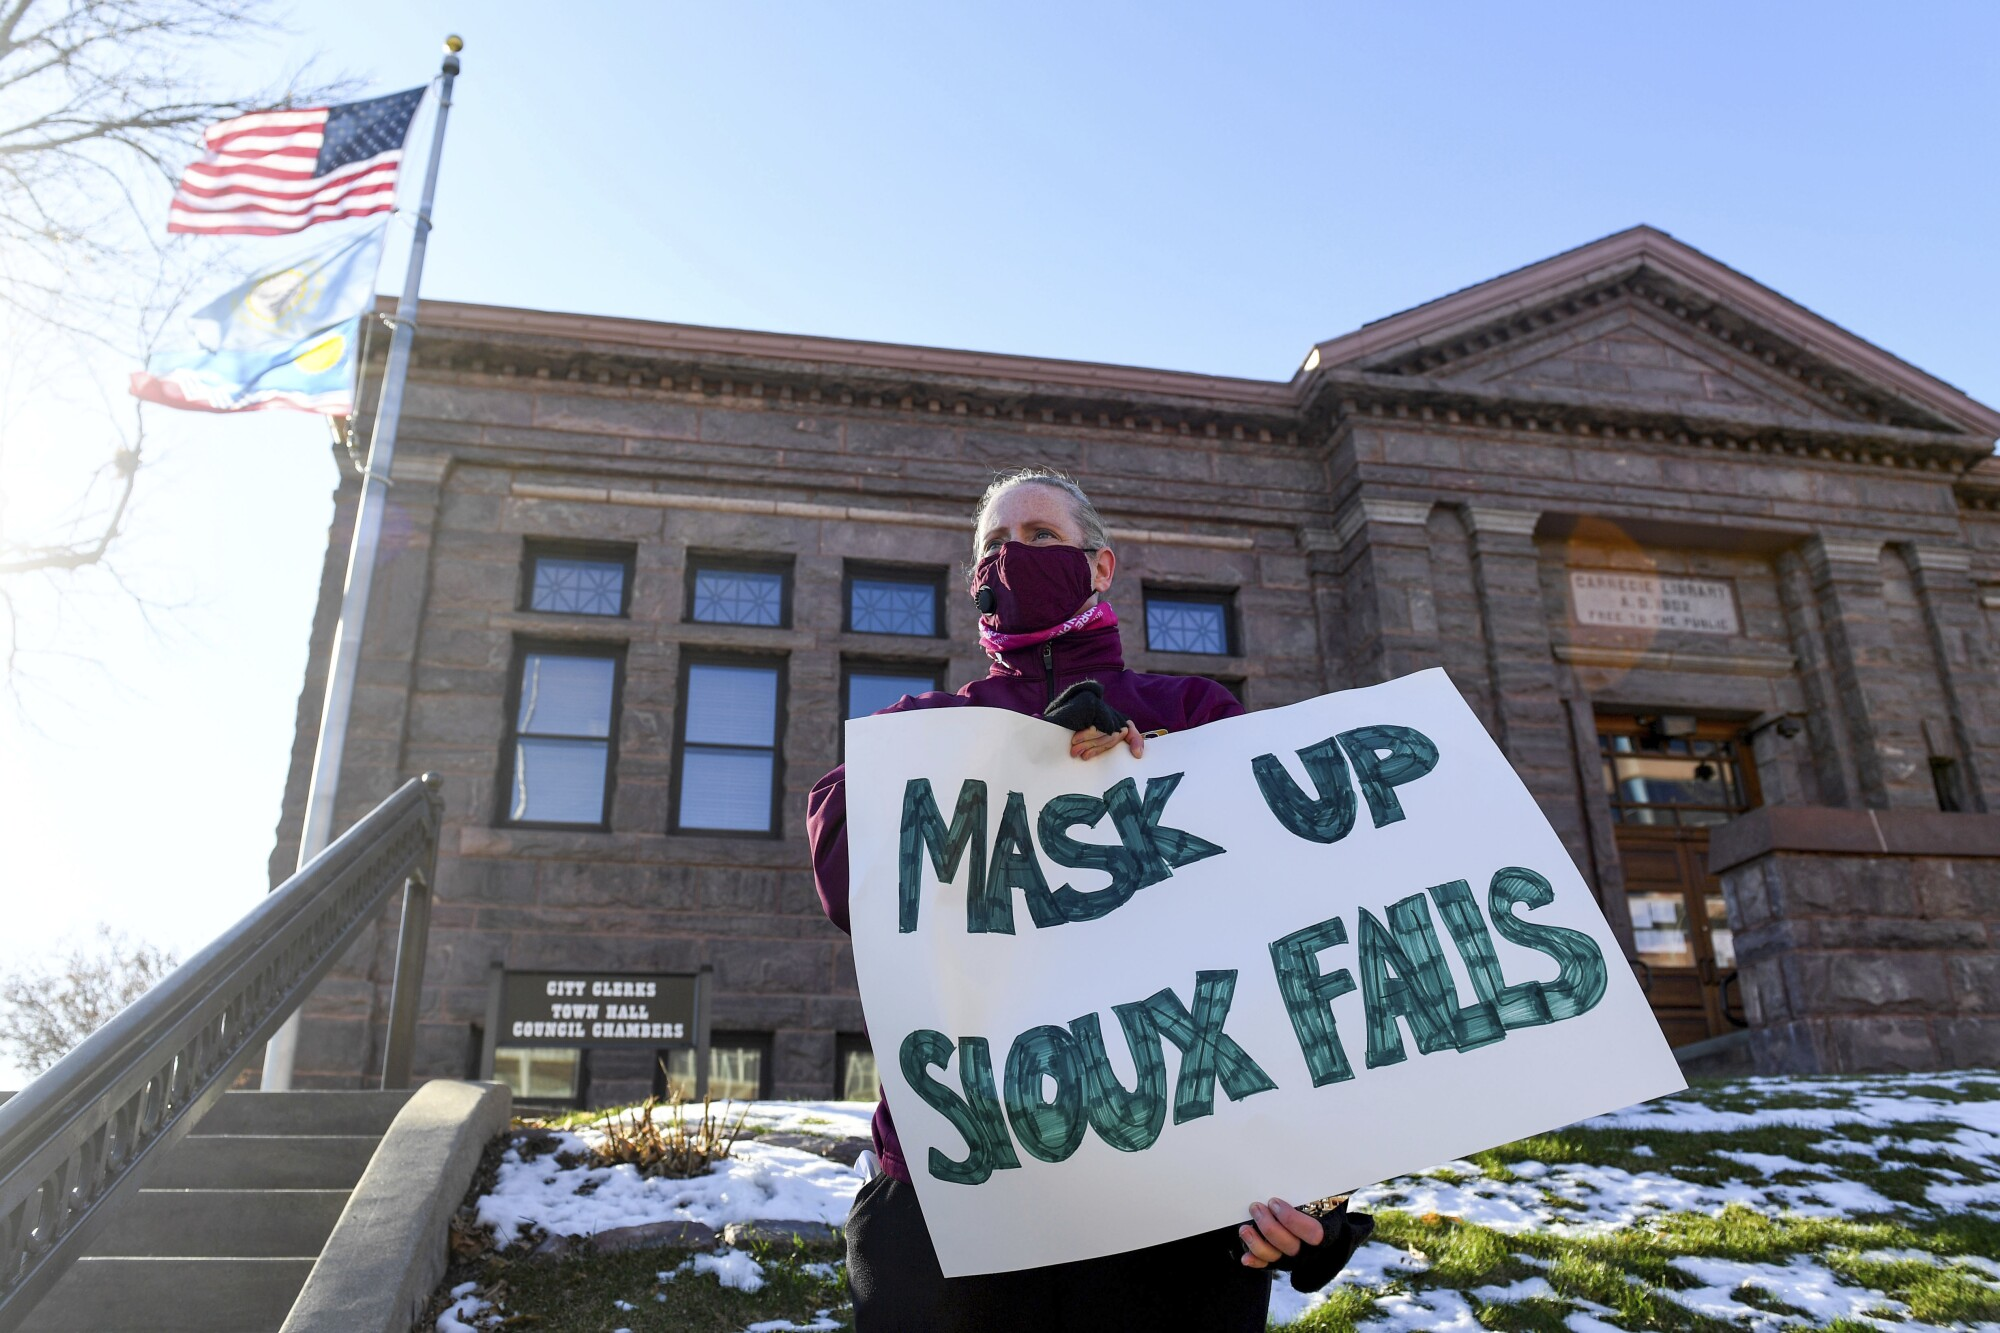 Jenae Ruesink holds a sign demanding a mask mandate from the city council in November in Sioux Falls, S.D.